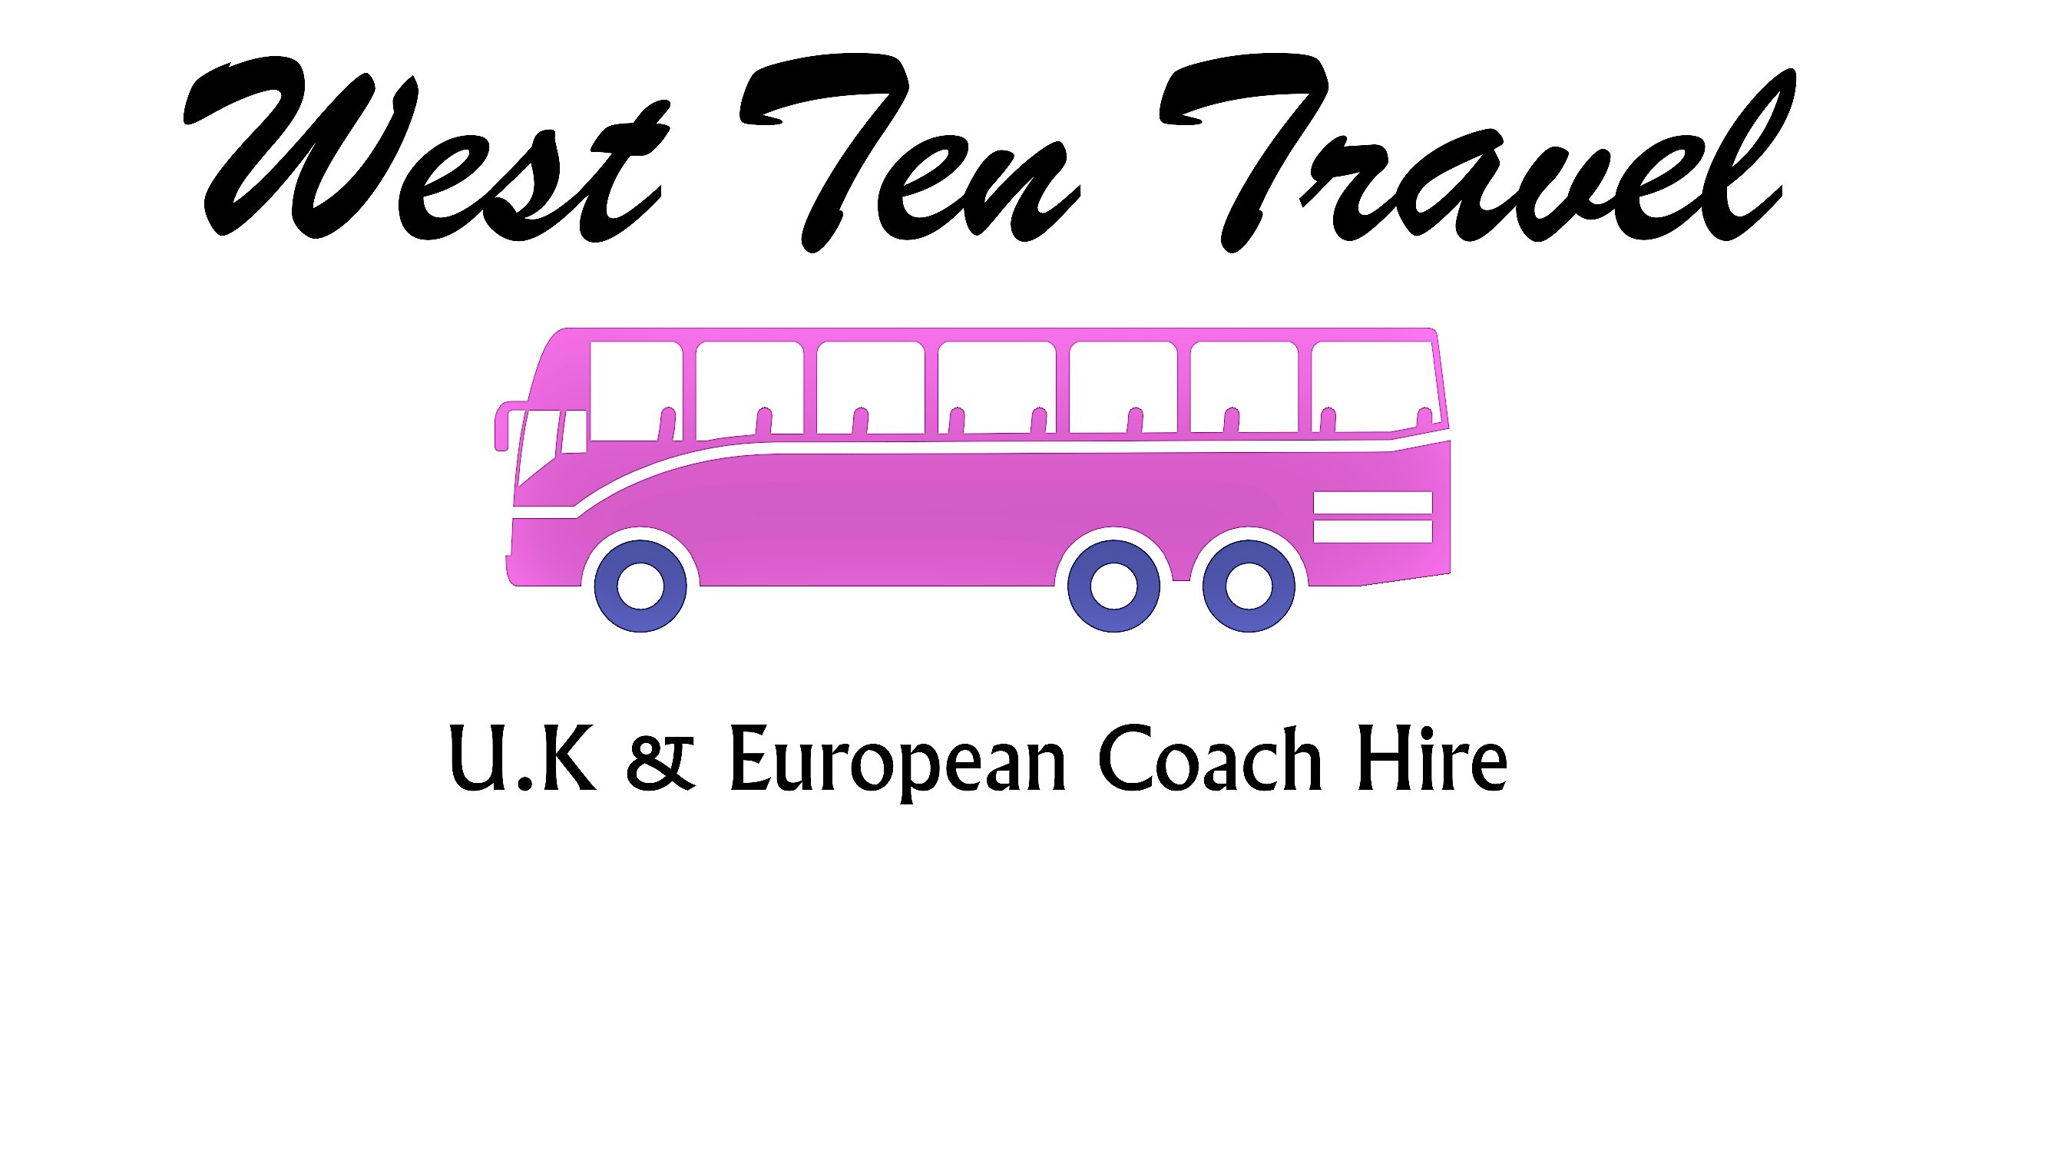 West Ten Travel logo